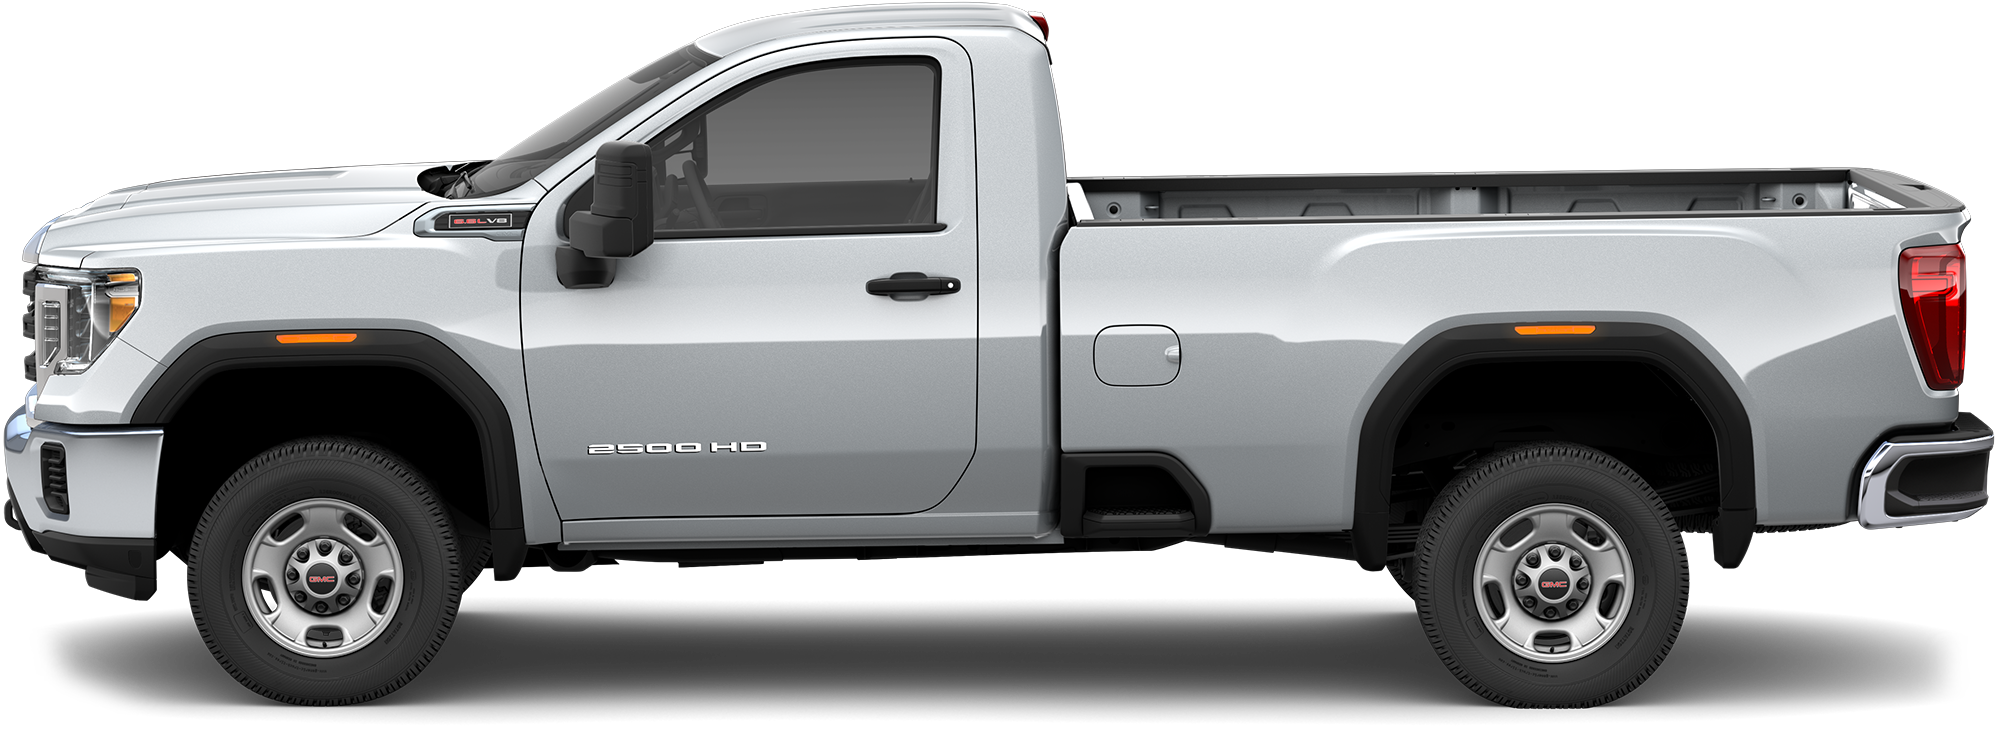 2021 GMC Sierra 2500 HD Truck Base